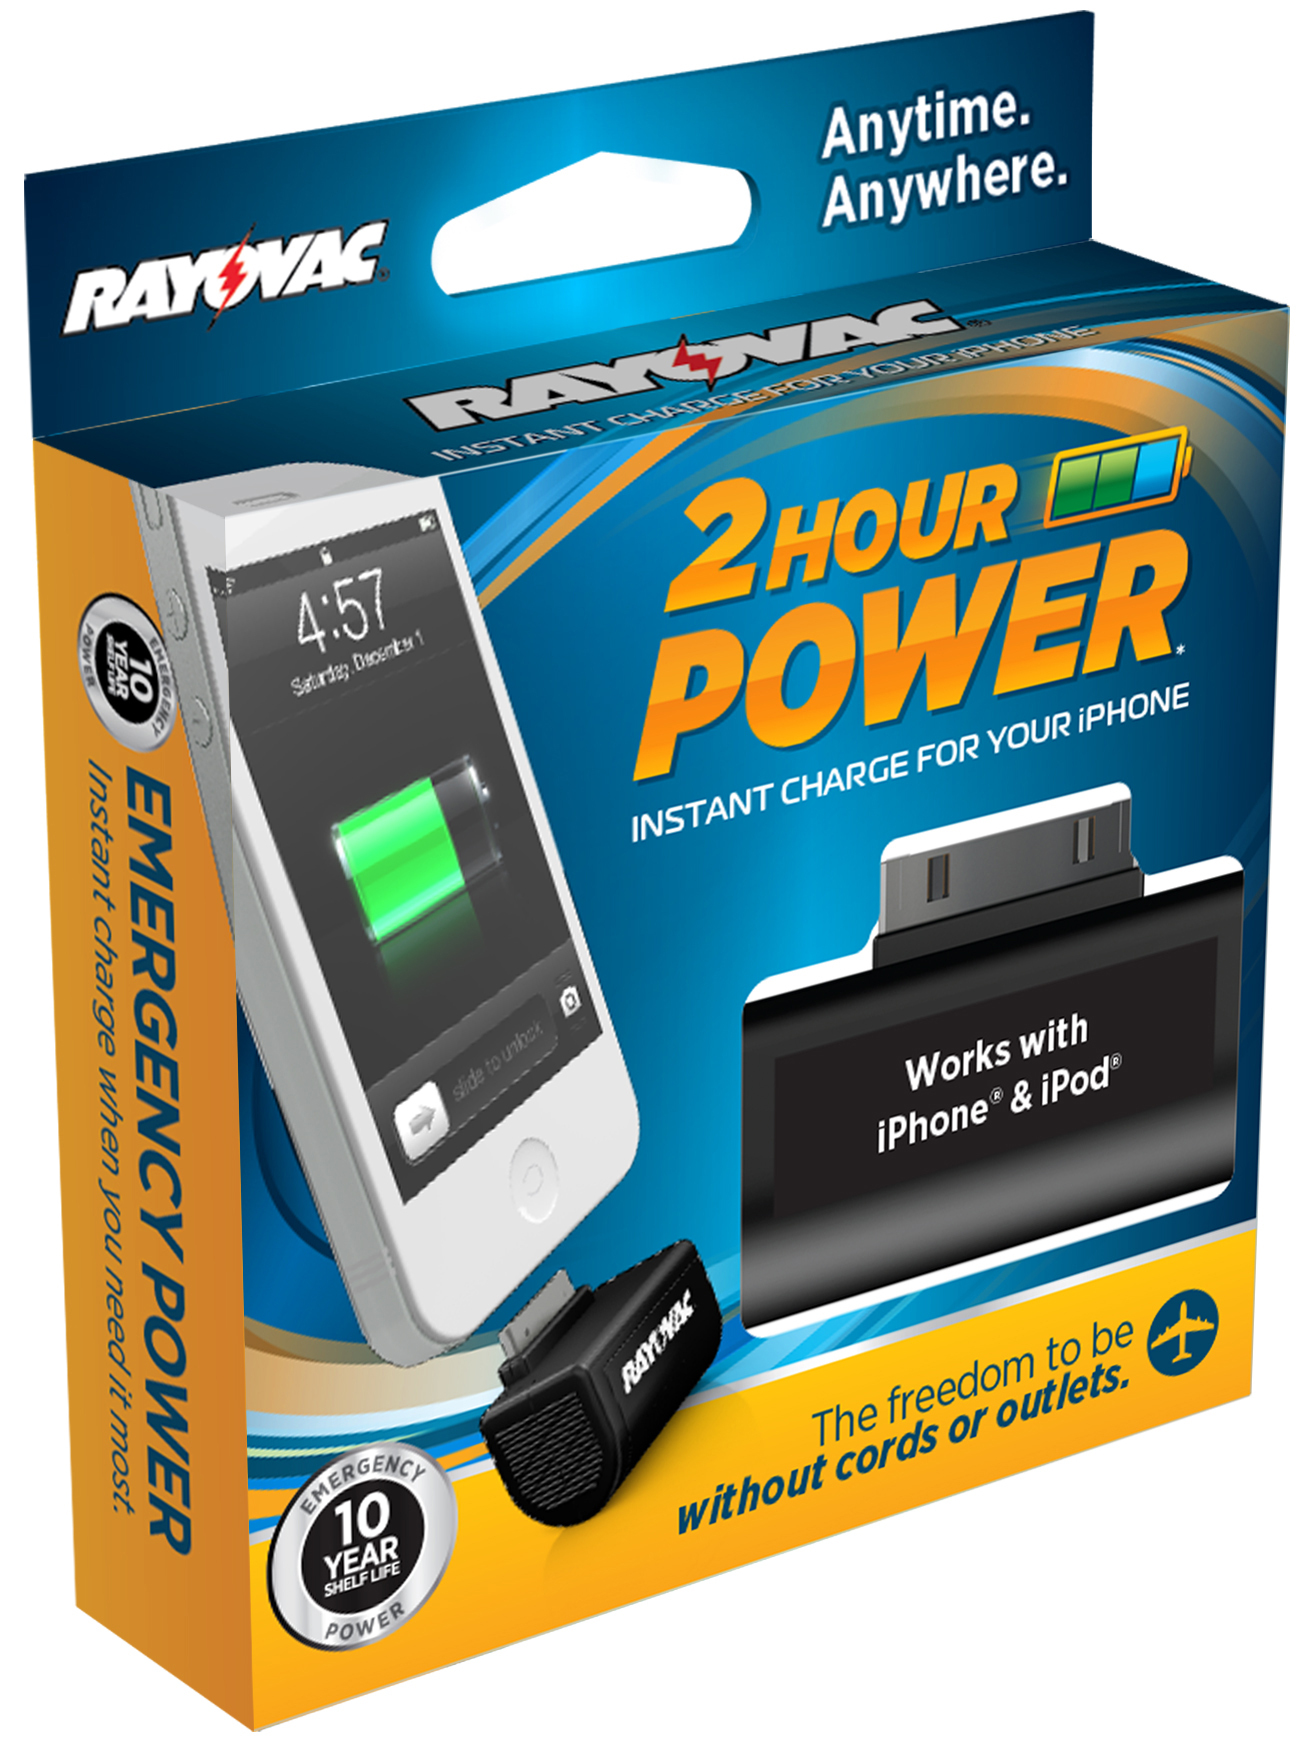 No Cords, No Outlets, No Electricity: Spectrum Brands\' Rayovac ...